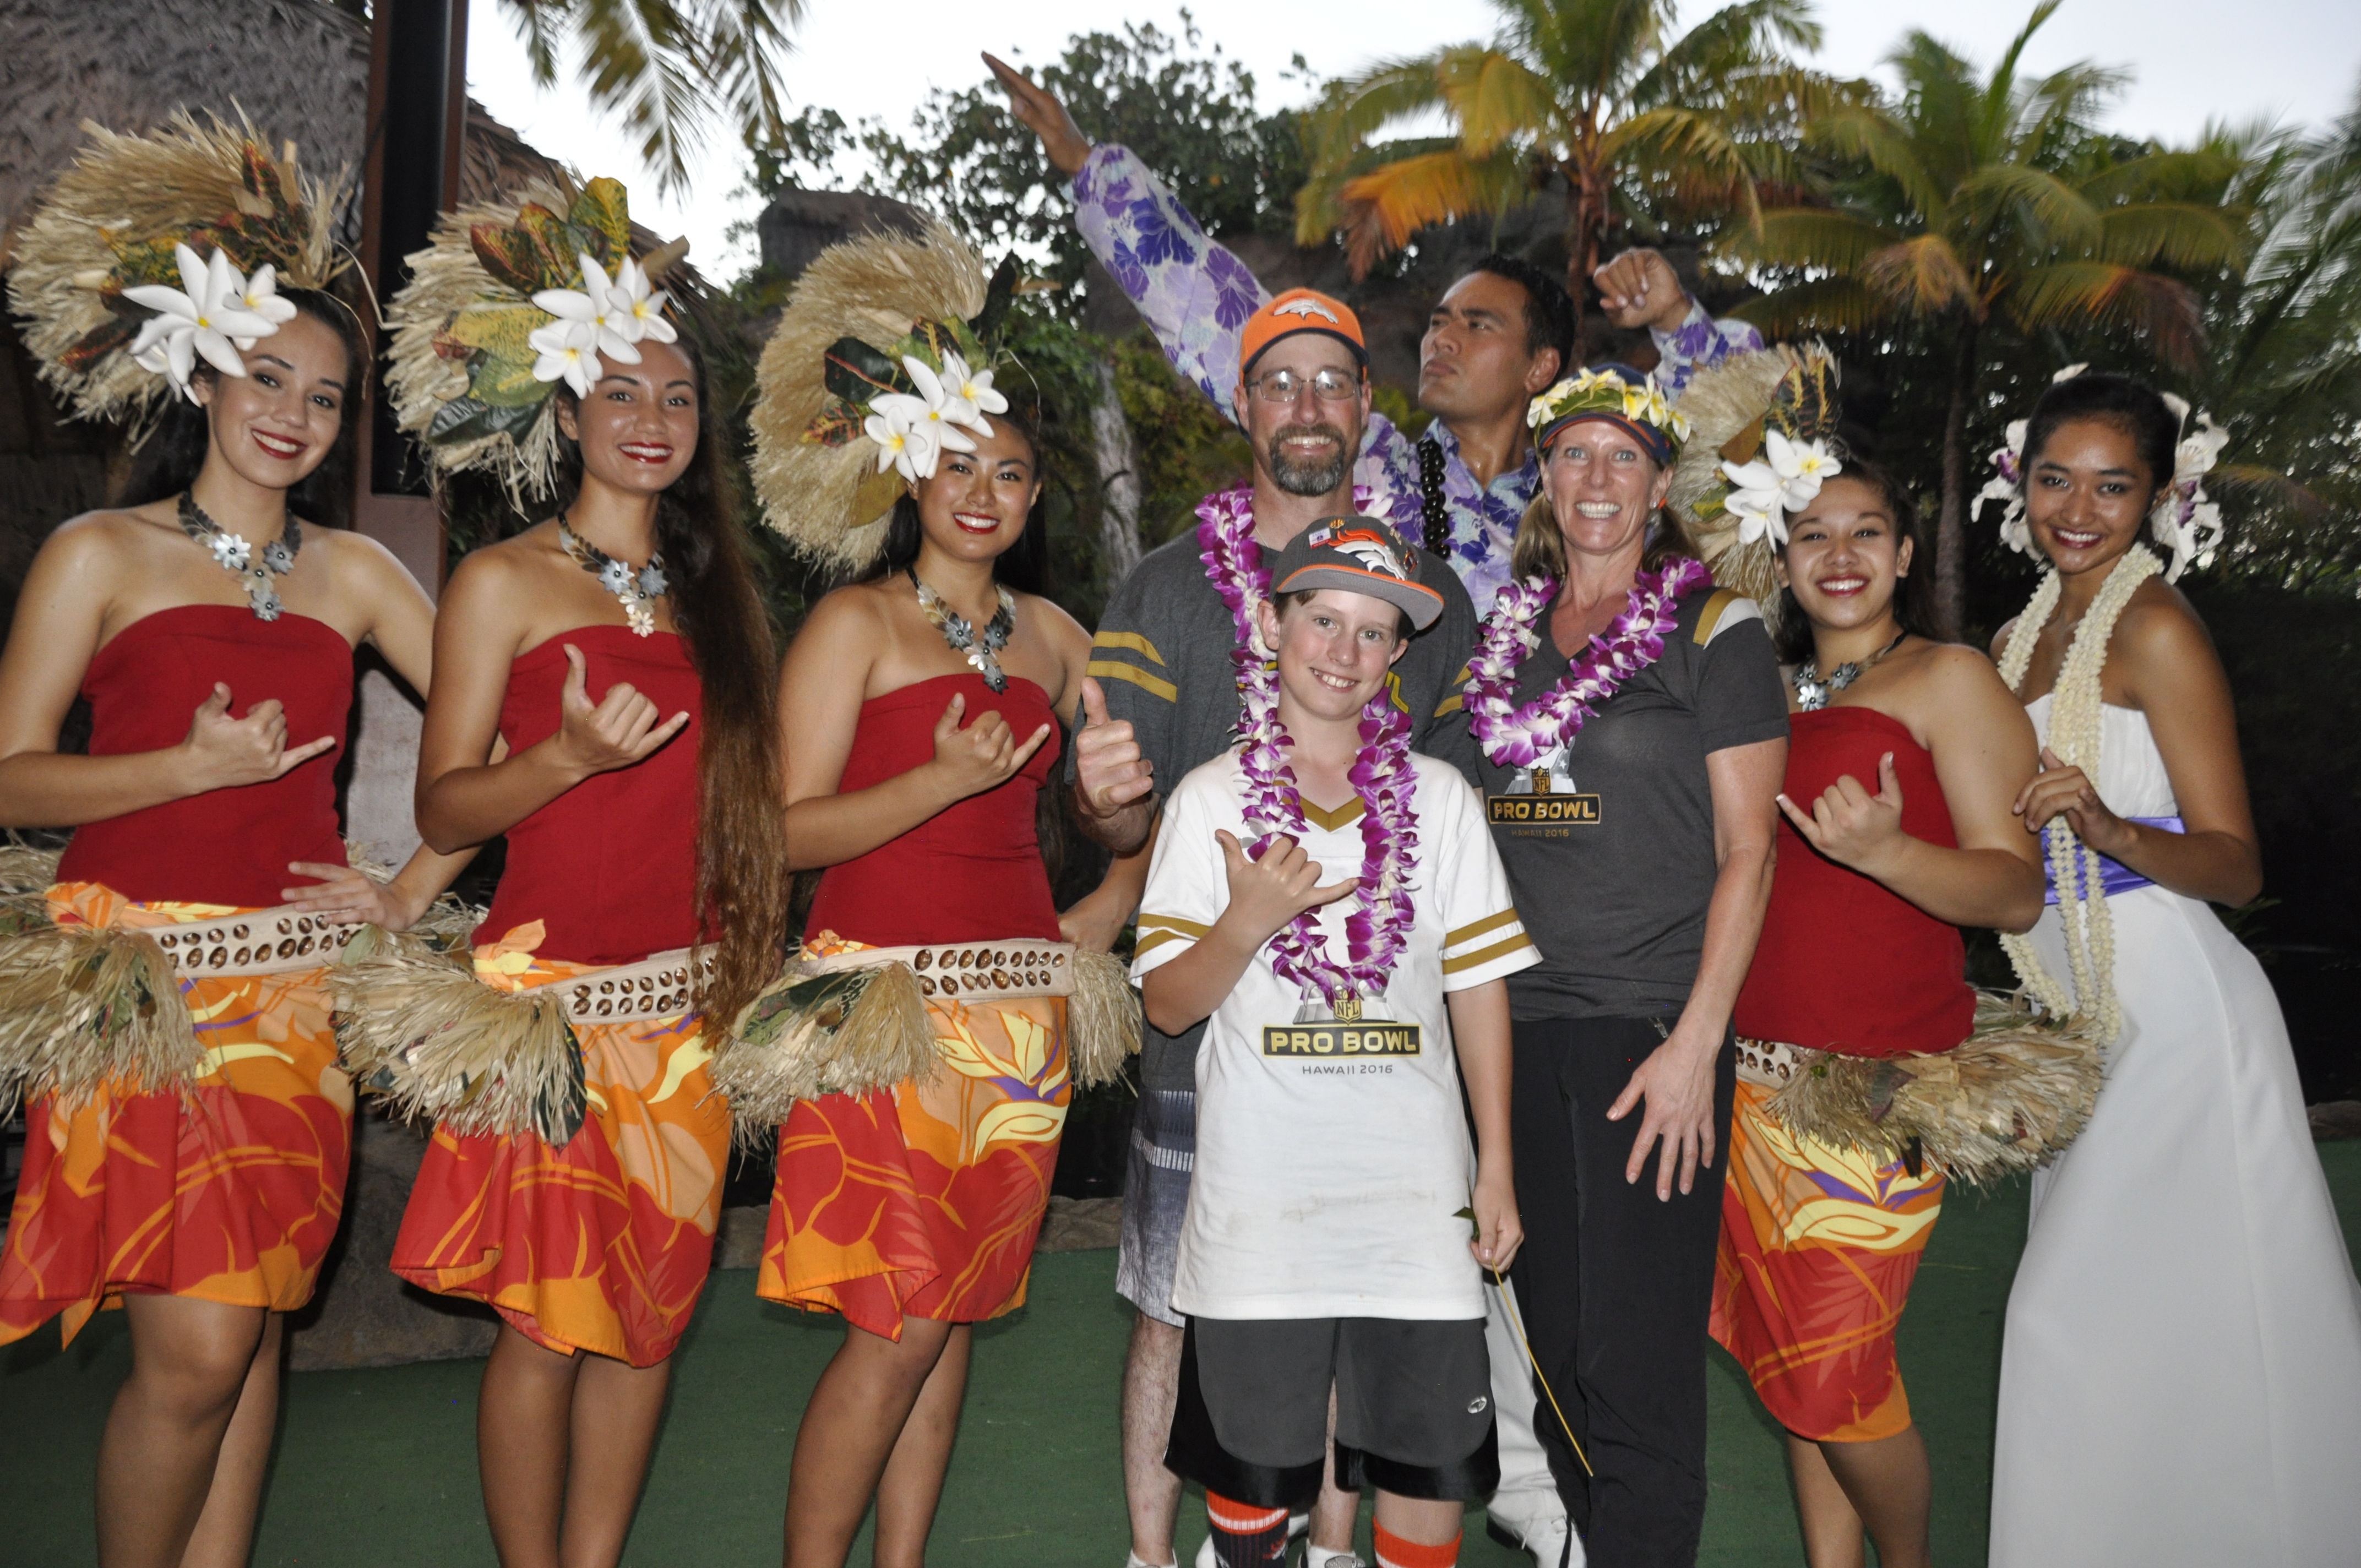 Lung Cancer Survivor Earns Trip to the Pro Bowl